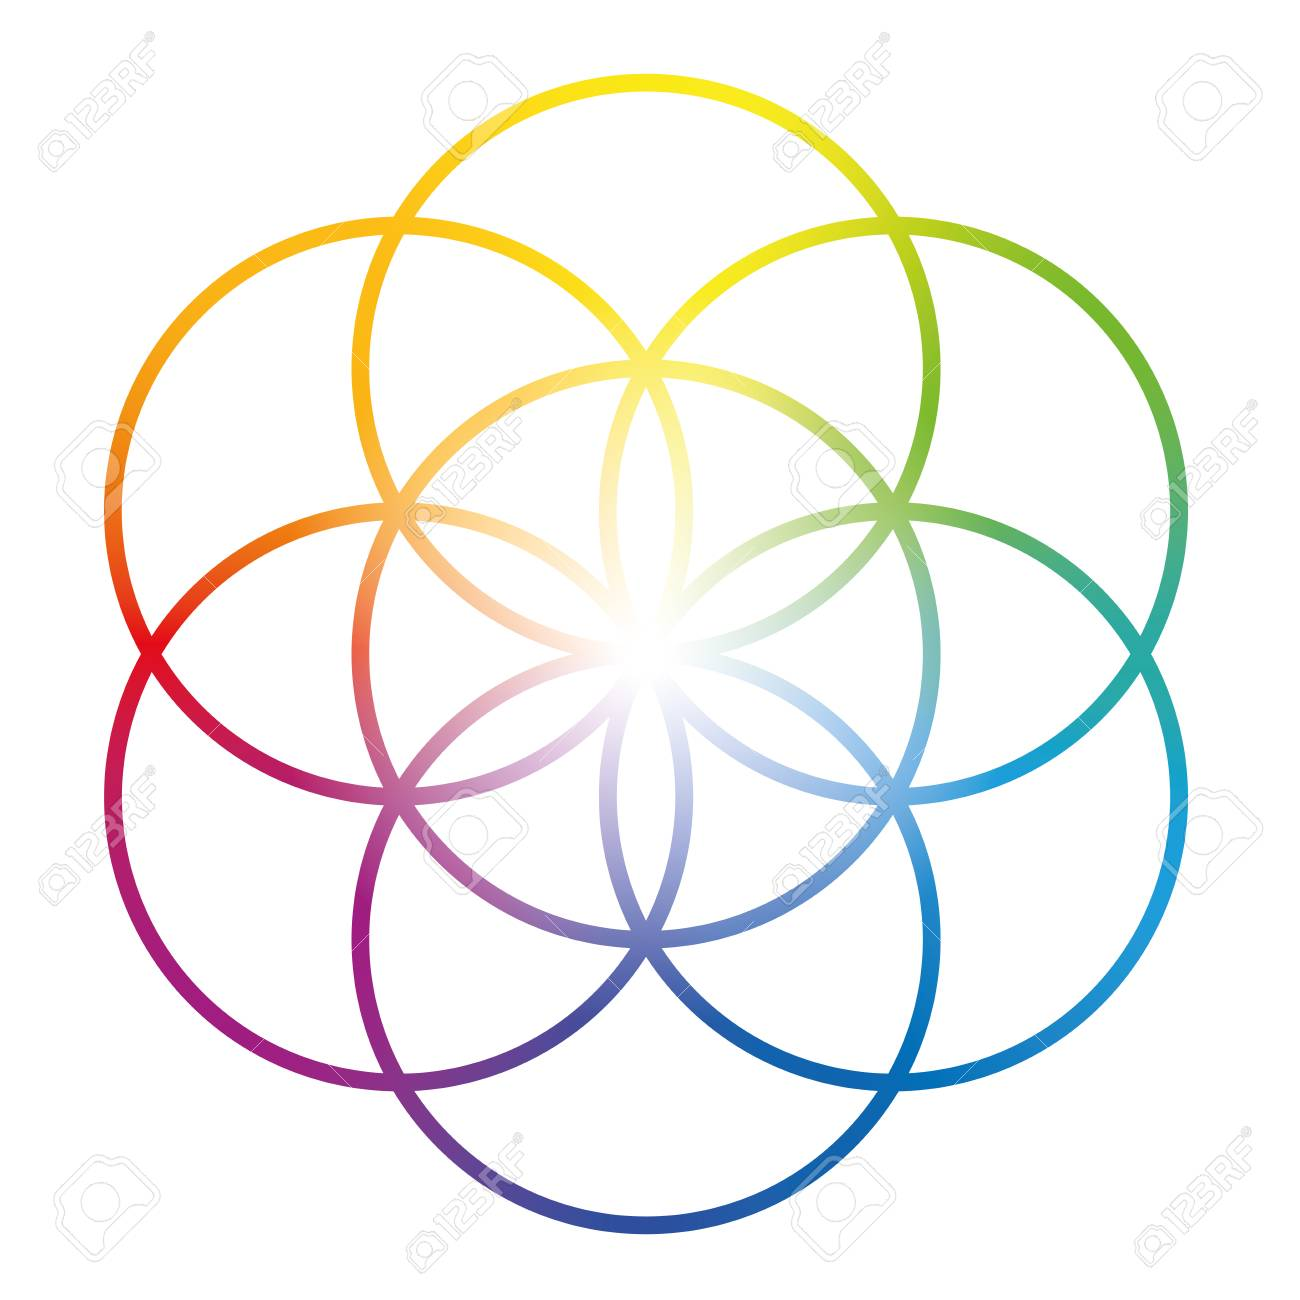 Rainbow colored Seed of Life. Precursor of Flower of Life symbol. Unique geometrical figure, composed of seven overlapping circles of same size, forming the symmetrical structure of a hexagon. - 121011089